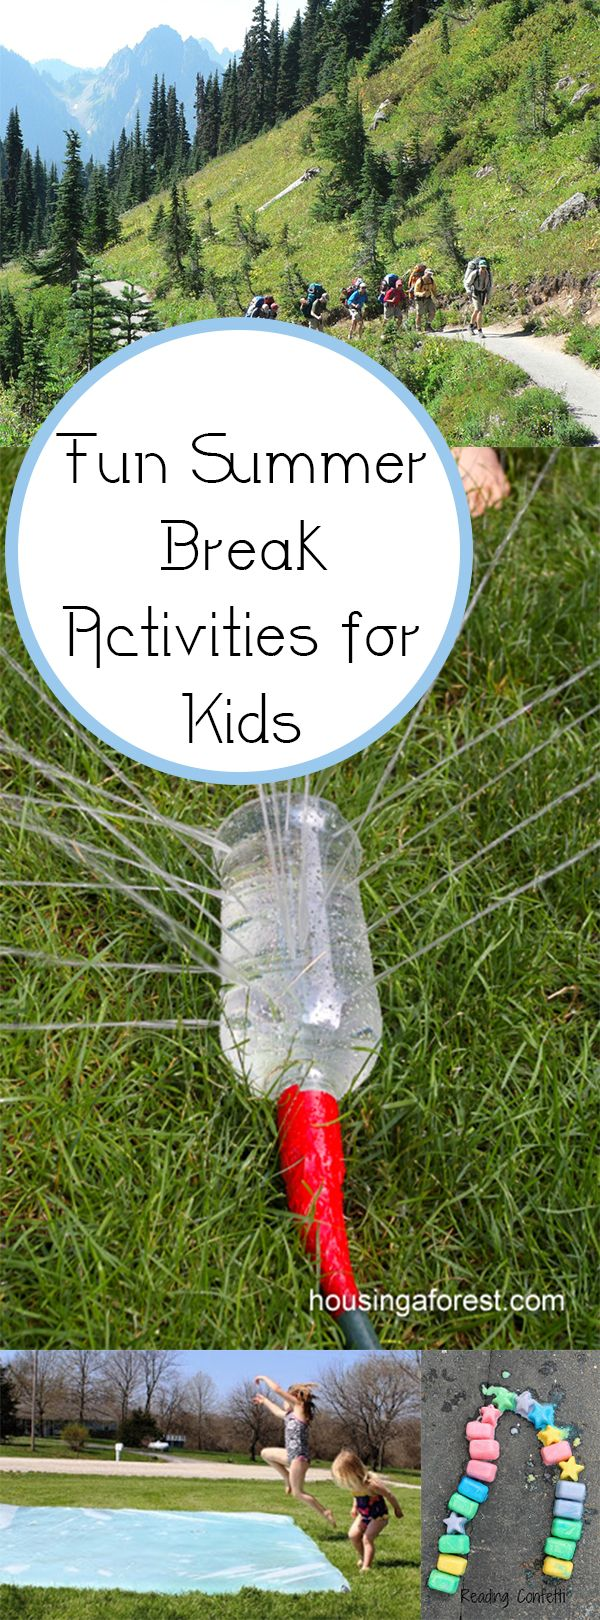 Activities i Fun For Summer Activities For Kids Kids  for love and Activities   shoes Kids Break